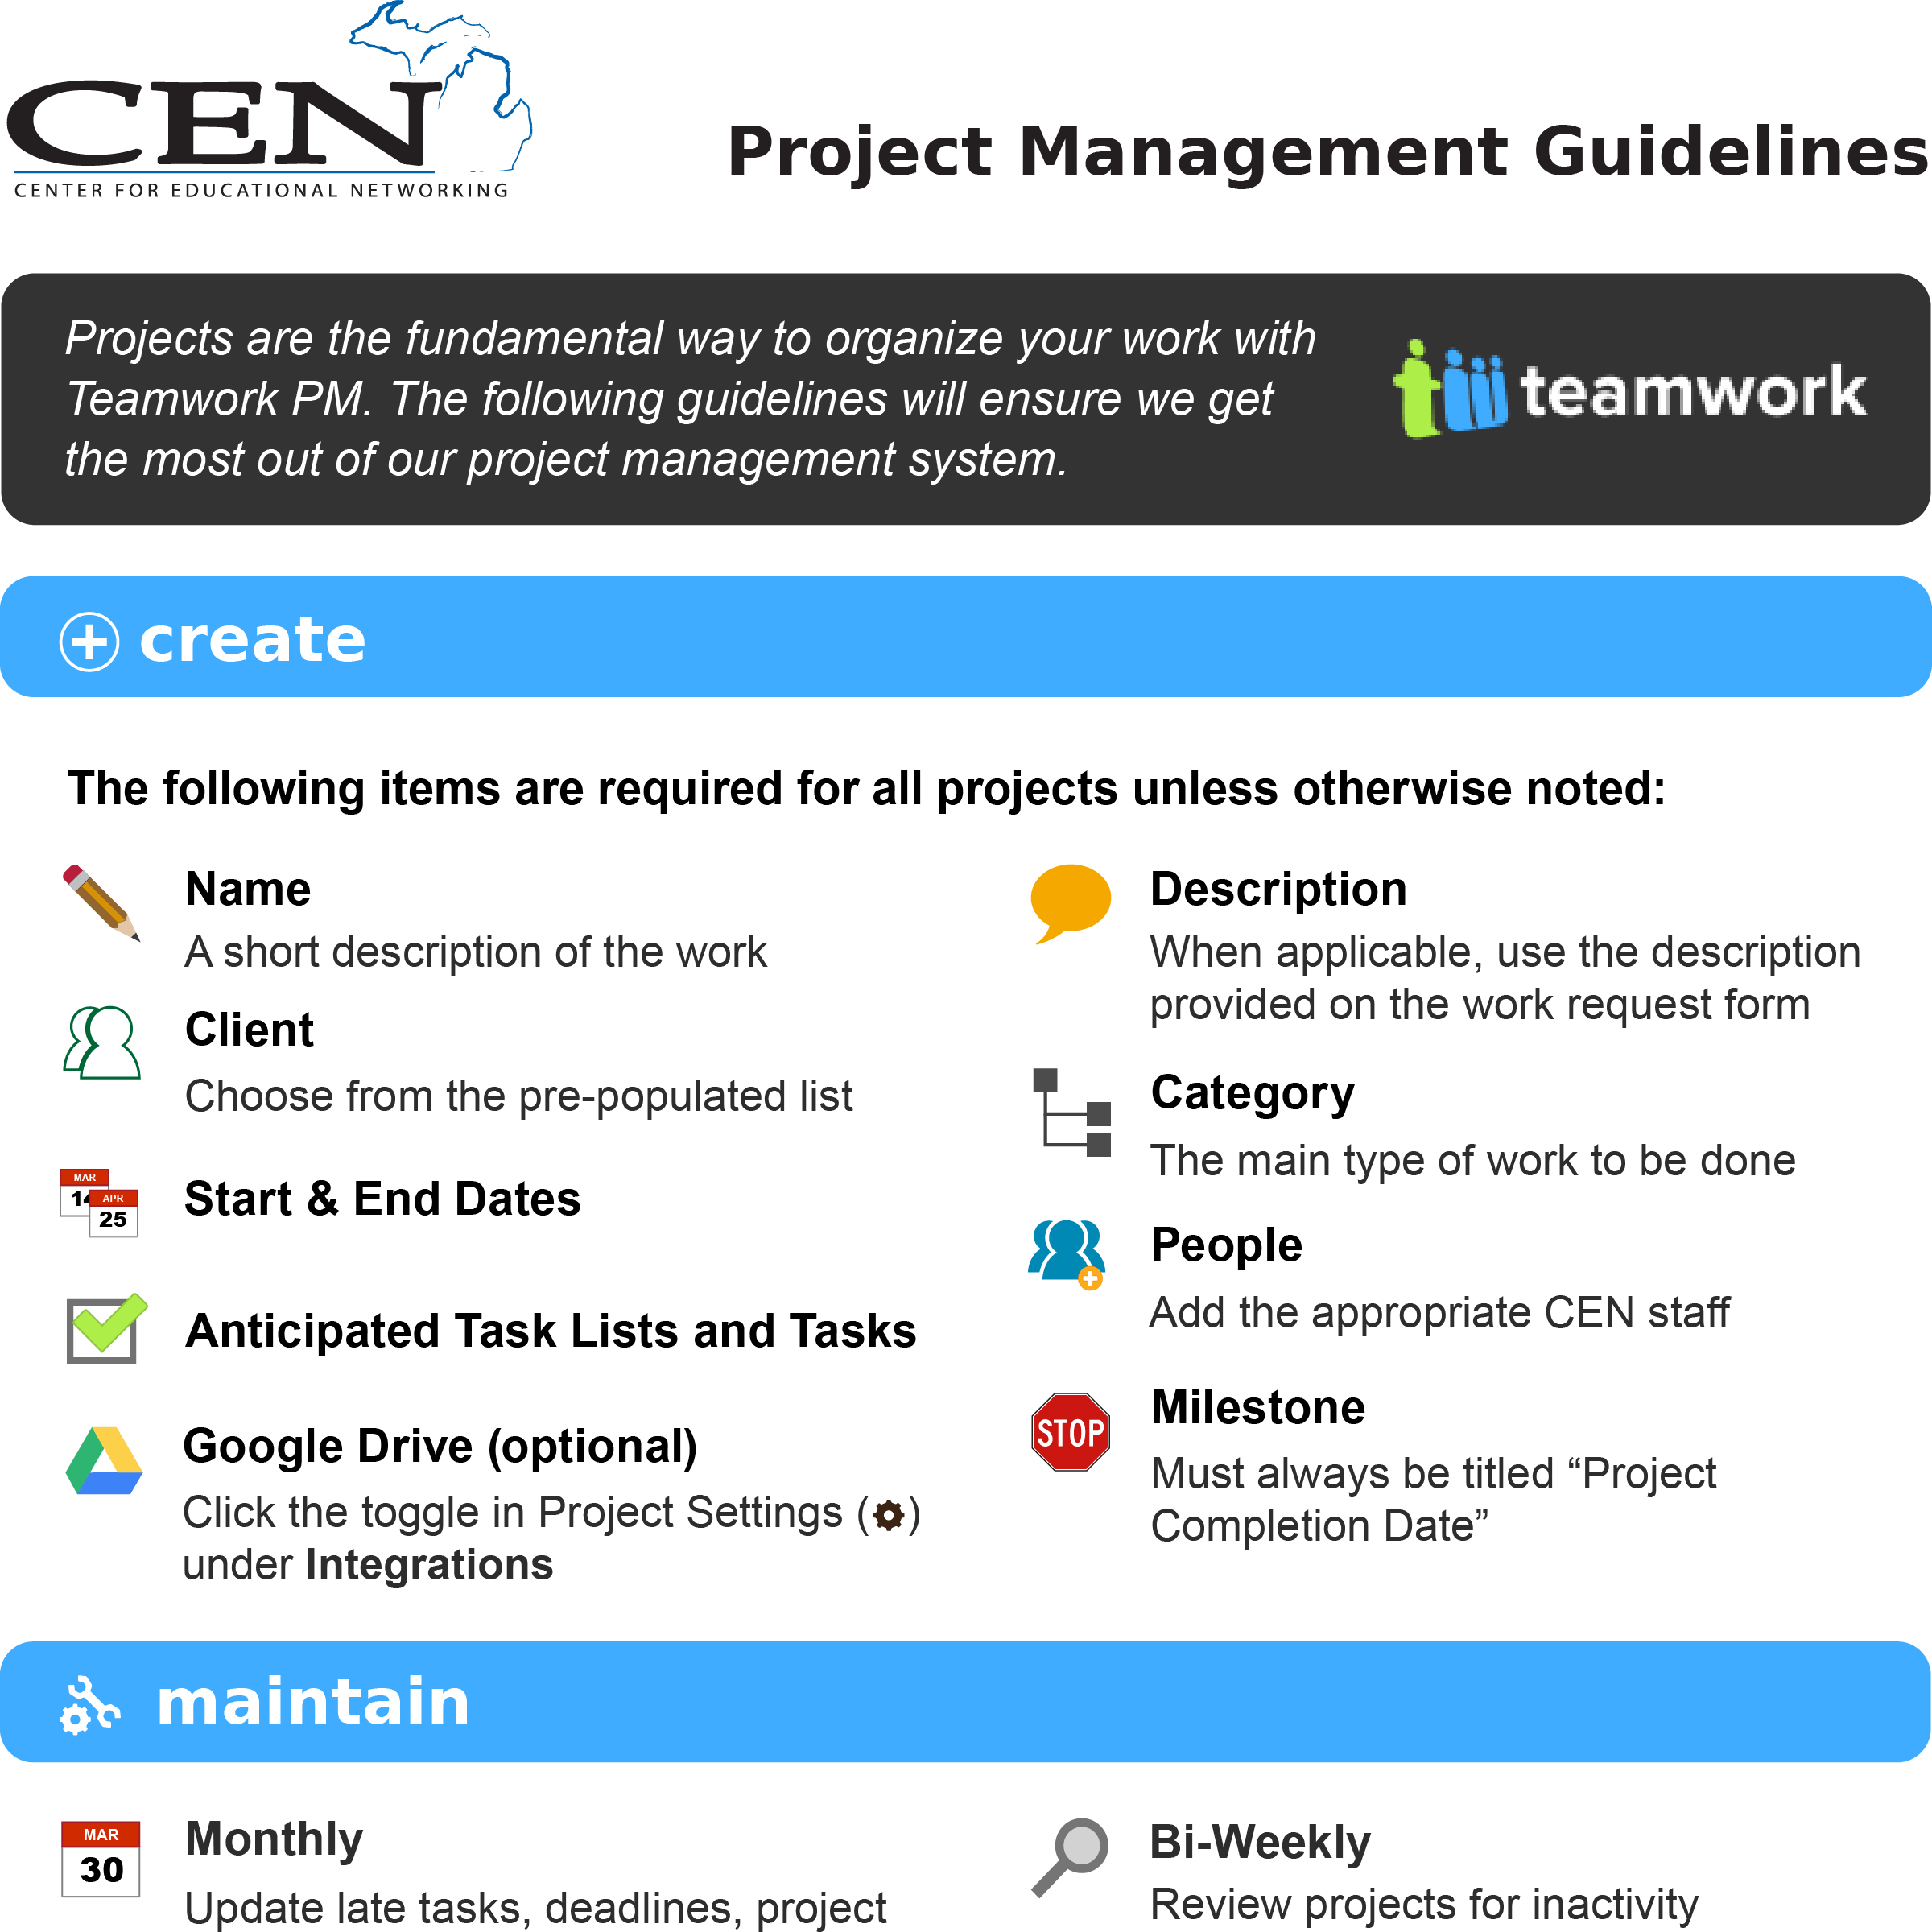 Project Management Guidelines Infographic